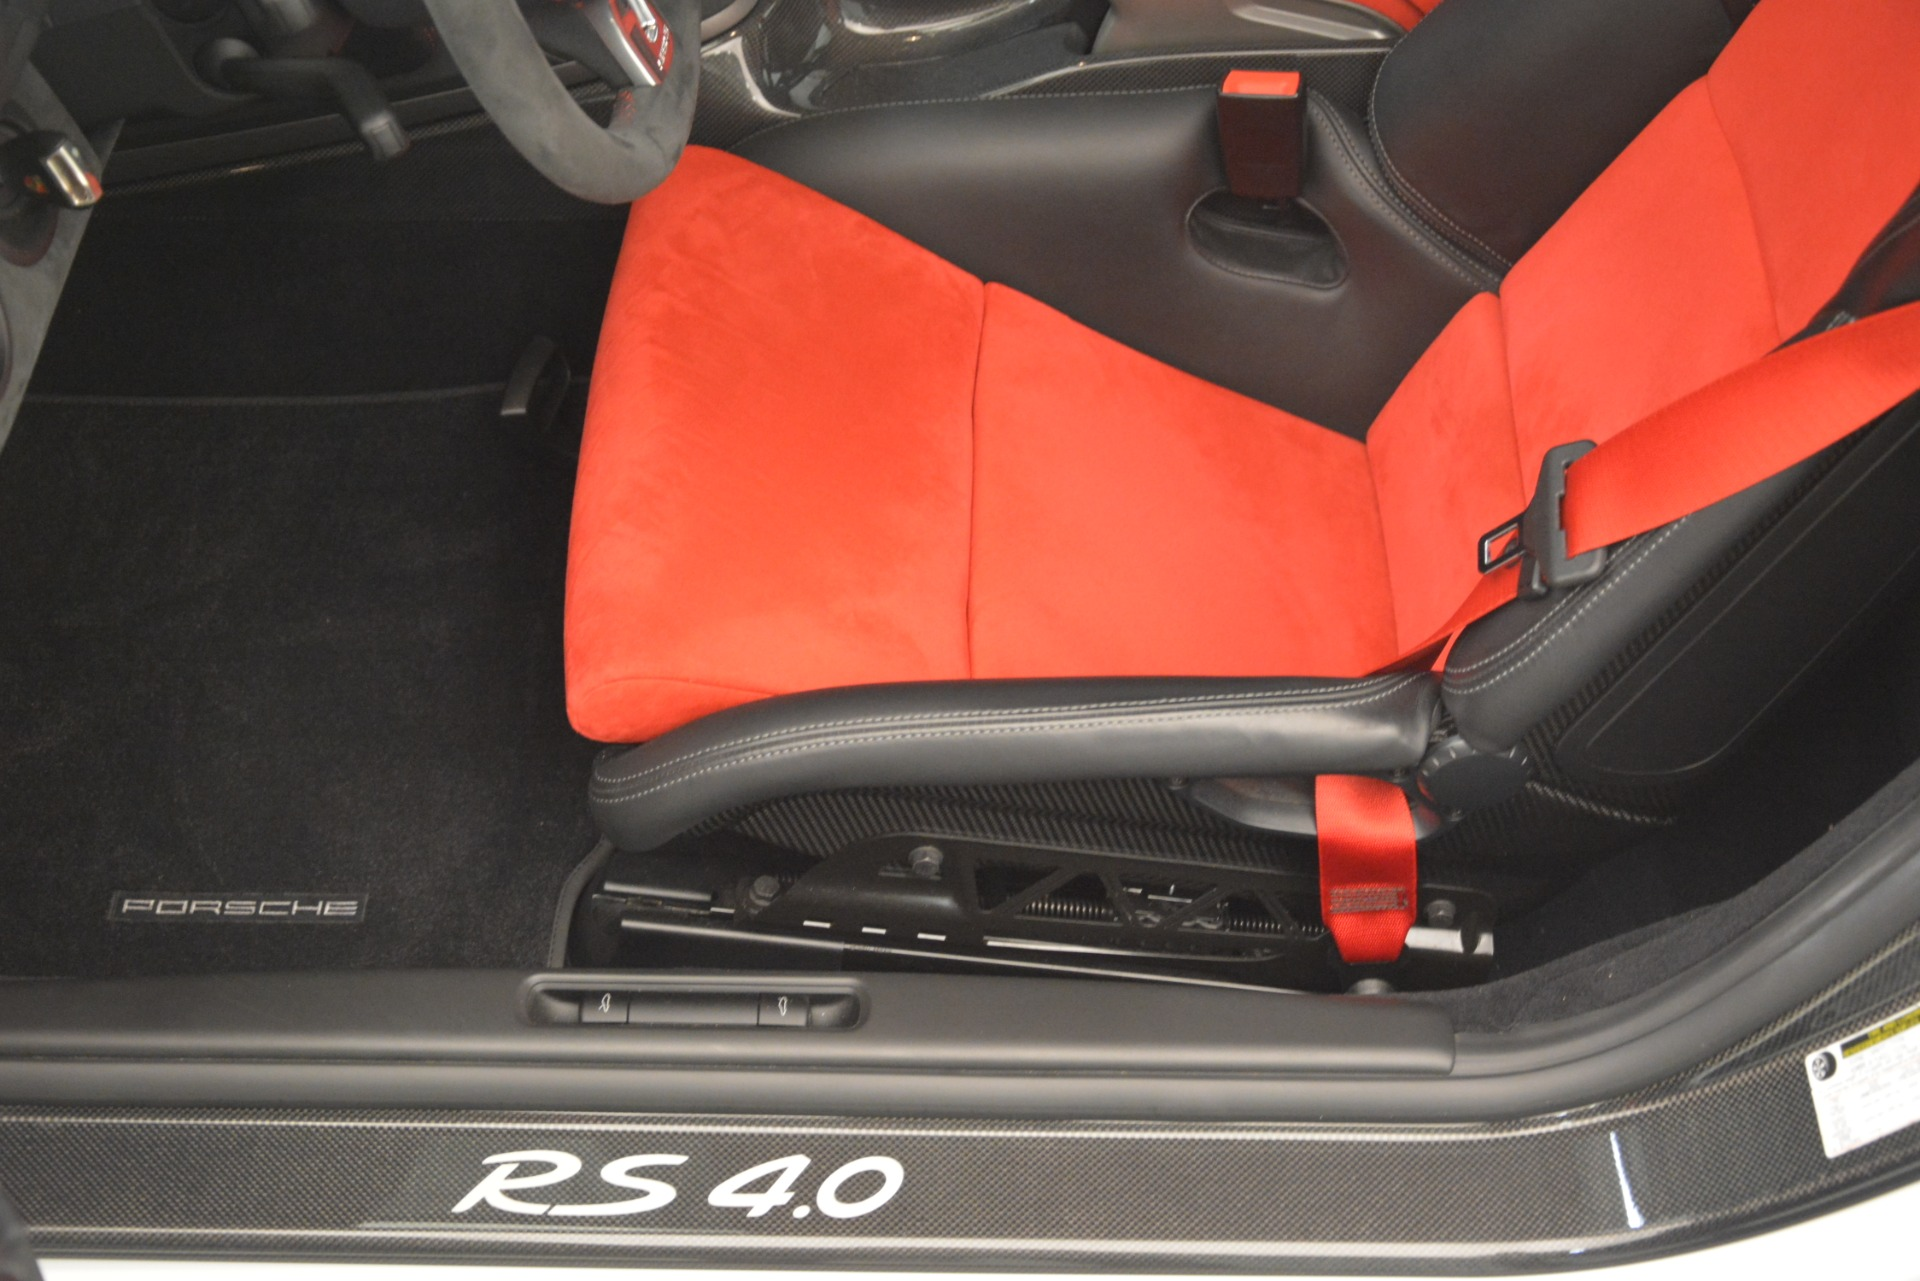 Used 2011 Porsche 911 GT3 RS 4.0 For Sale In Greenwich, CT 3188_p16